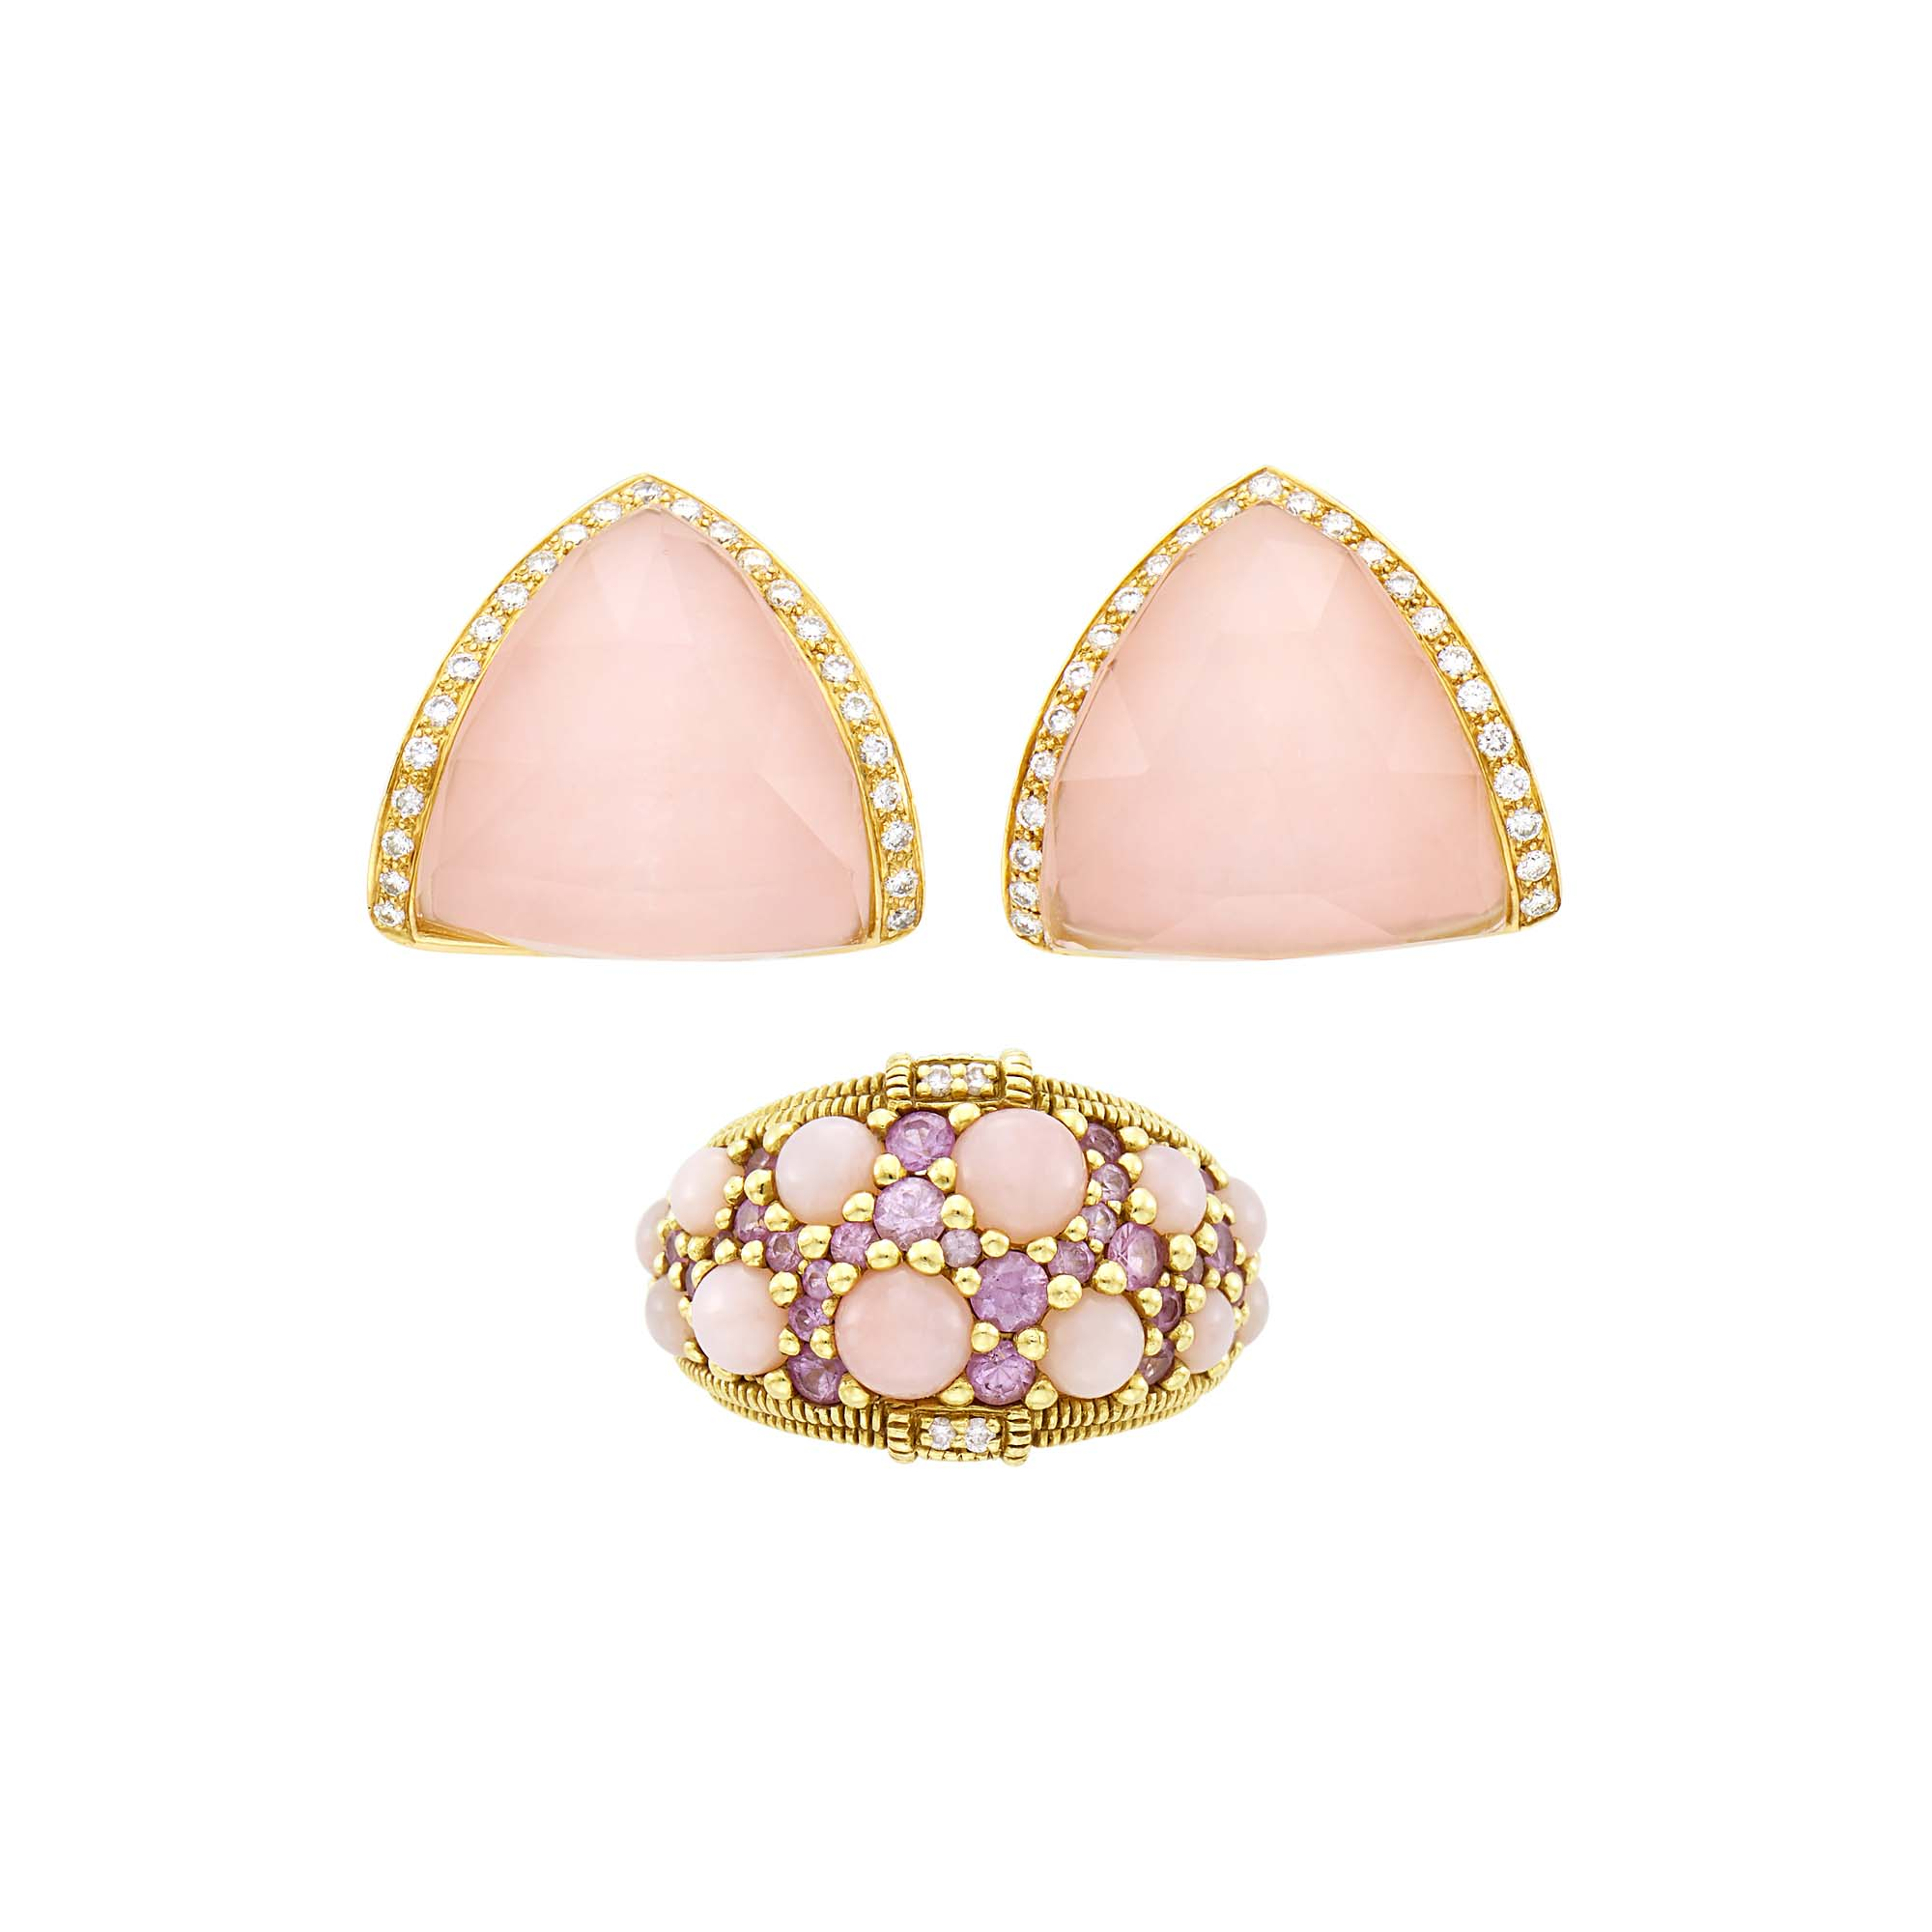 Lot image - Pair of Gold, Pink Opal and Diamond Earrings and Judith Ripka Gold, Pink Opal, Pink Sapphire and Diamond Ring